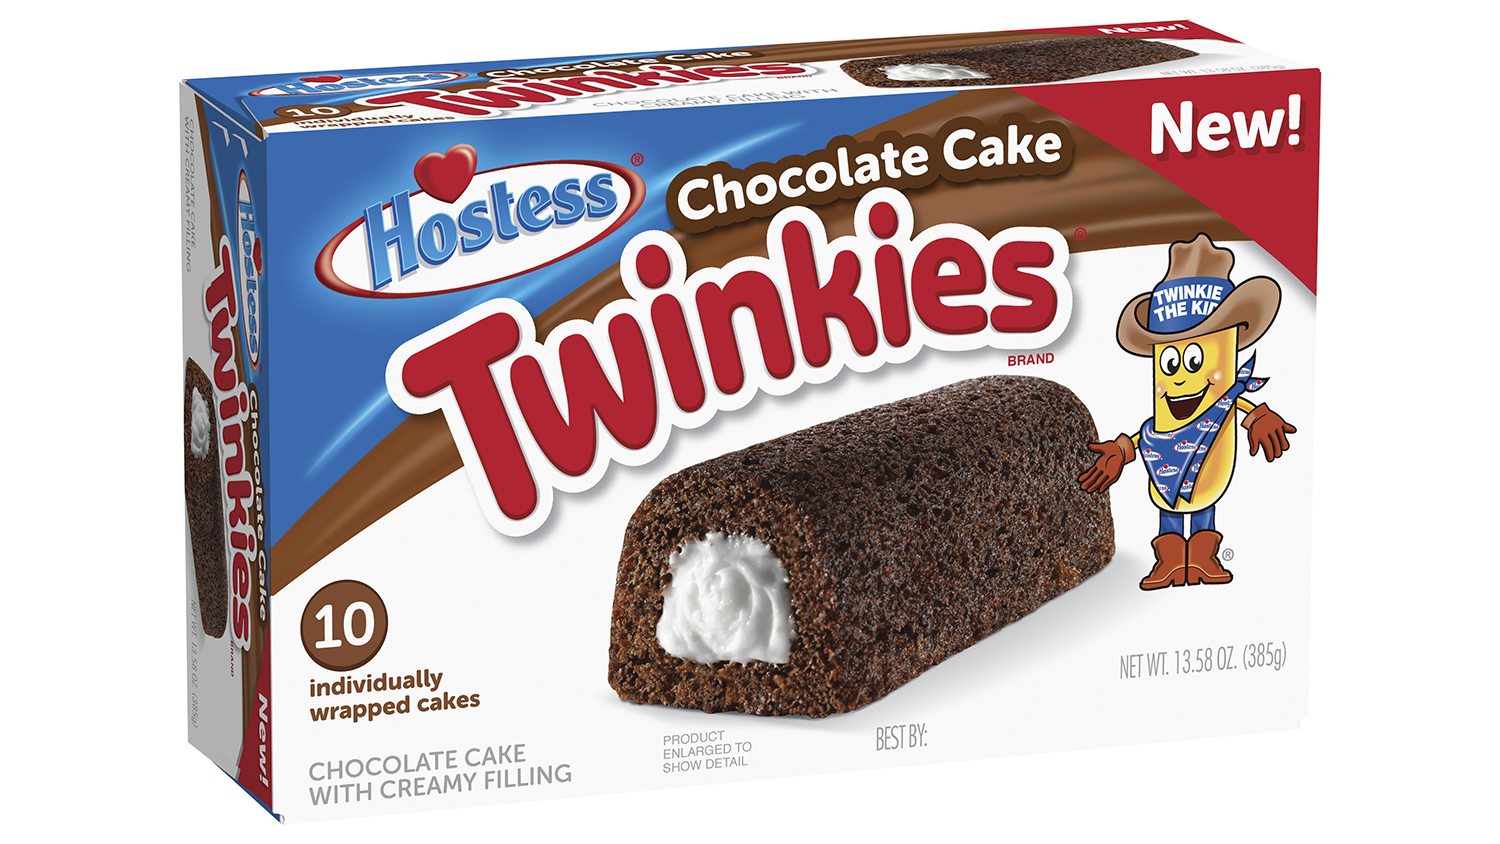 Twinkies Now Come in Chocolate